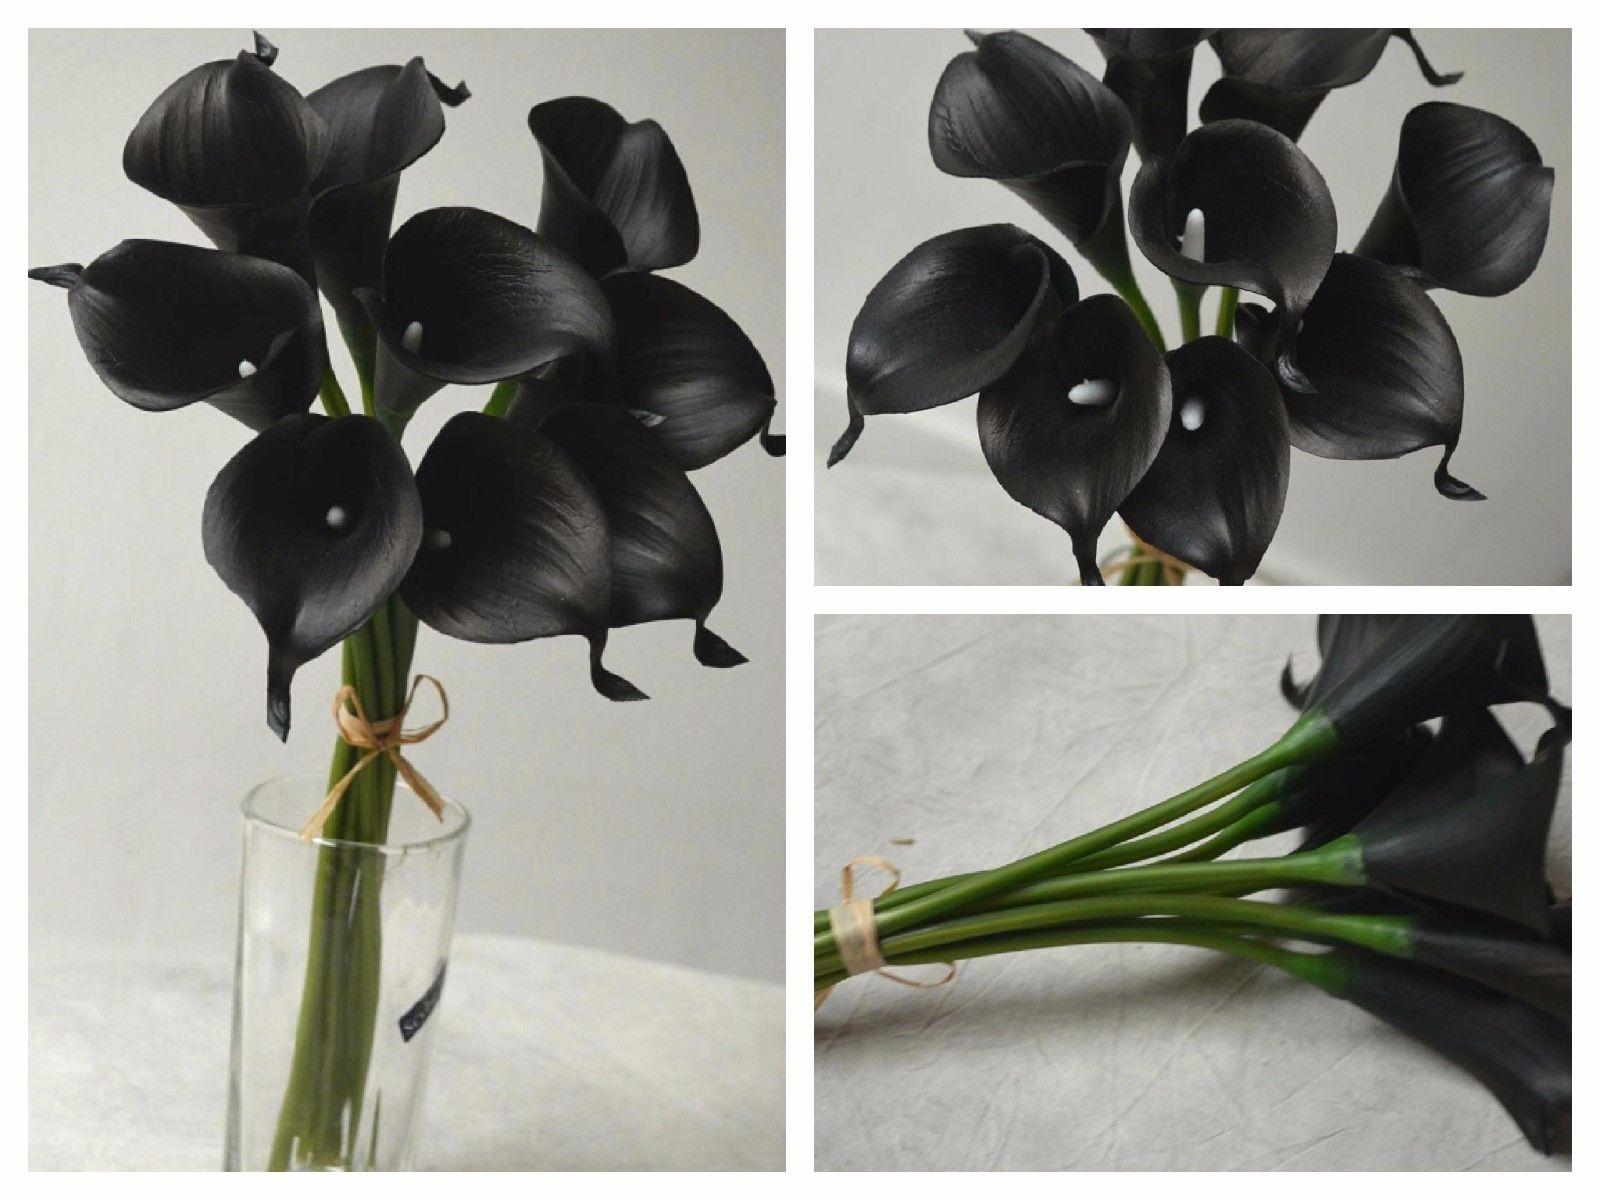 2018 10 single stem real touch flowers black calla lily black 2018 10 single stem real touch flowers black calla lily black flowers silk for bridal bouquet wedding home decor from hyh2013 503 dhgate mightylinksfo